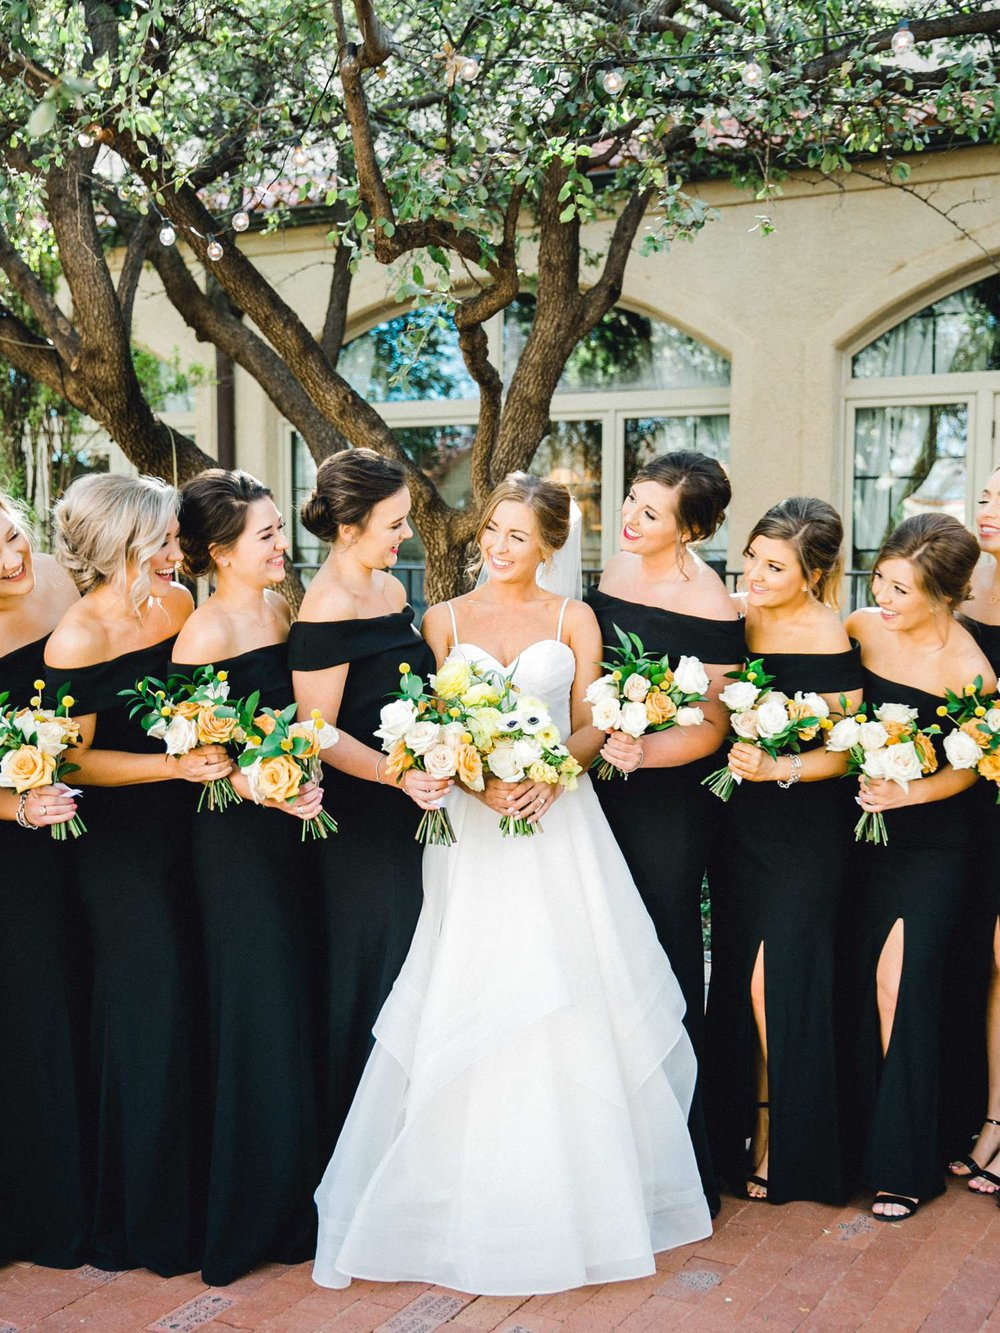 MARLEE+LLOYD+MORGAN+ALLEEJ+TEXAS+TECH+MERKET+ALUMNI+WEDDINGS+LUBBOCK+WEST+TABLE+CLASSIC+SPAIN_0090.jpg